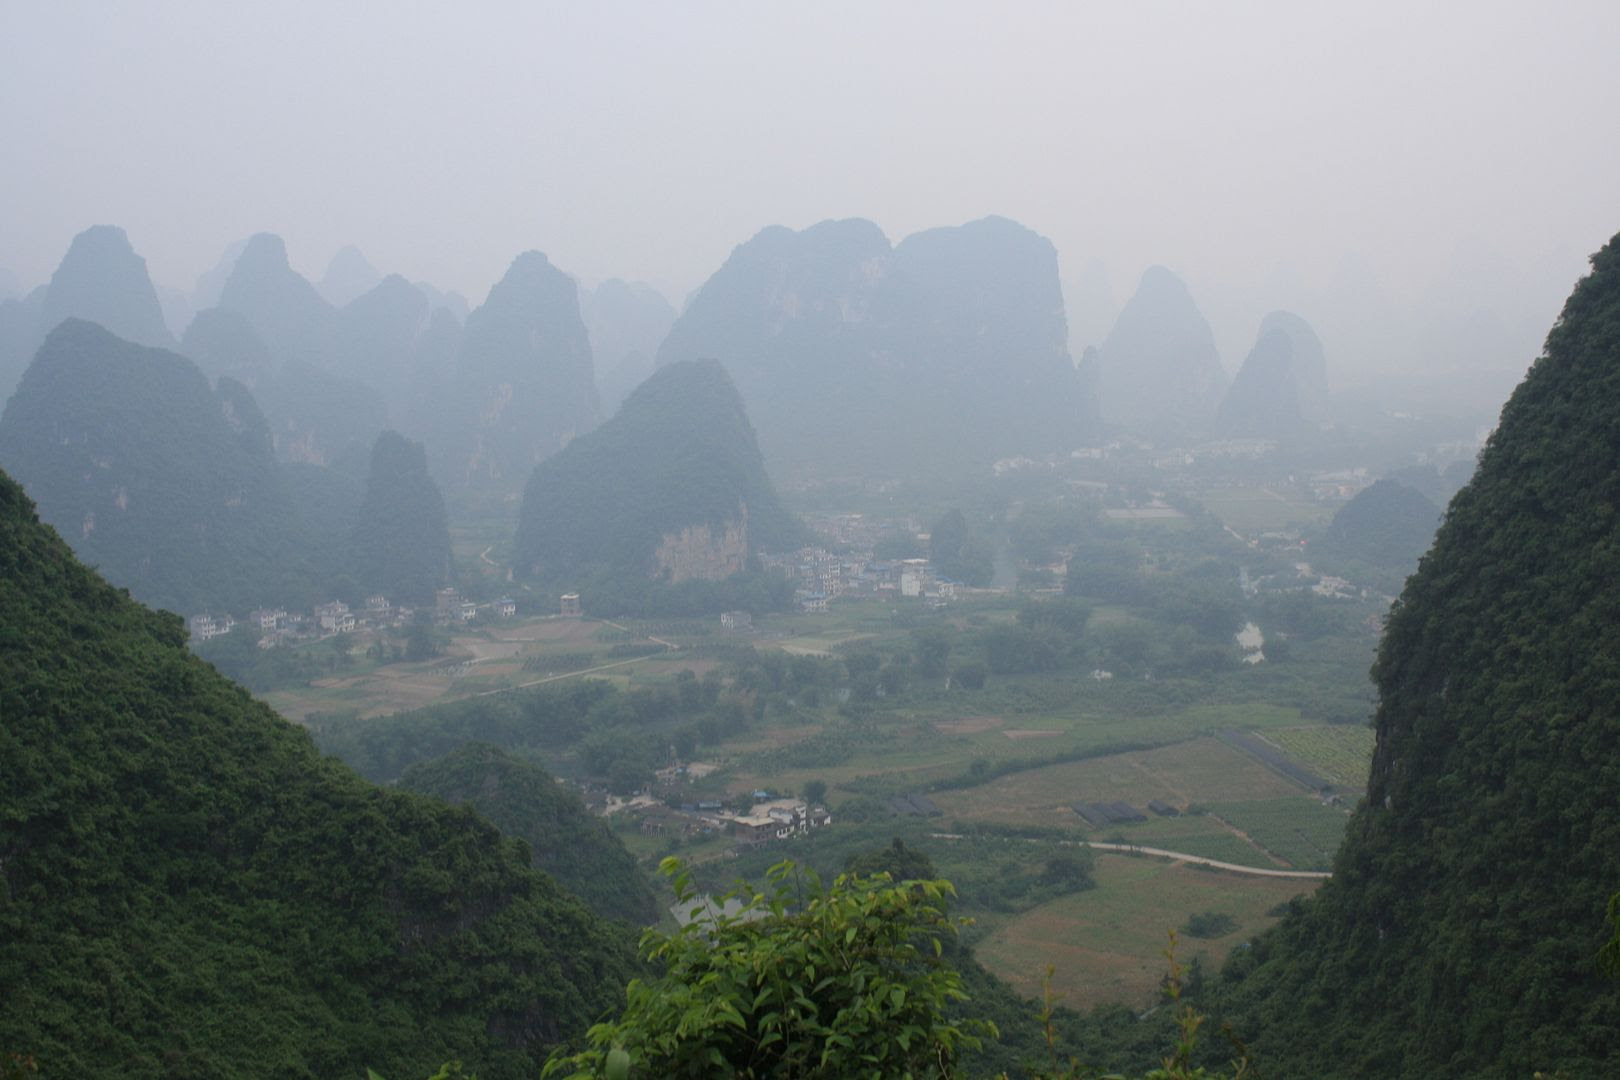 View from the Top of Moon Hill in Yangshuo, China photo 2014-05-031824_zpsa2f77f15.jpg